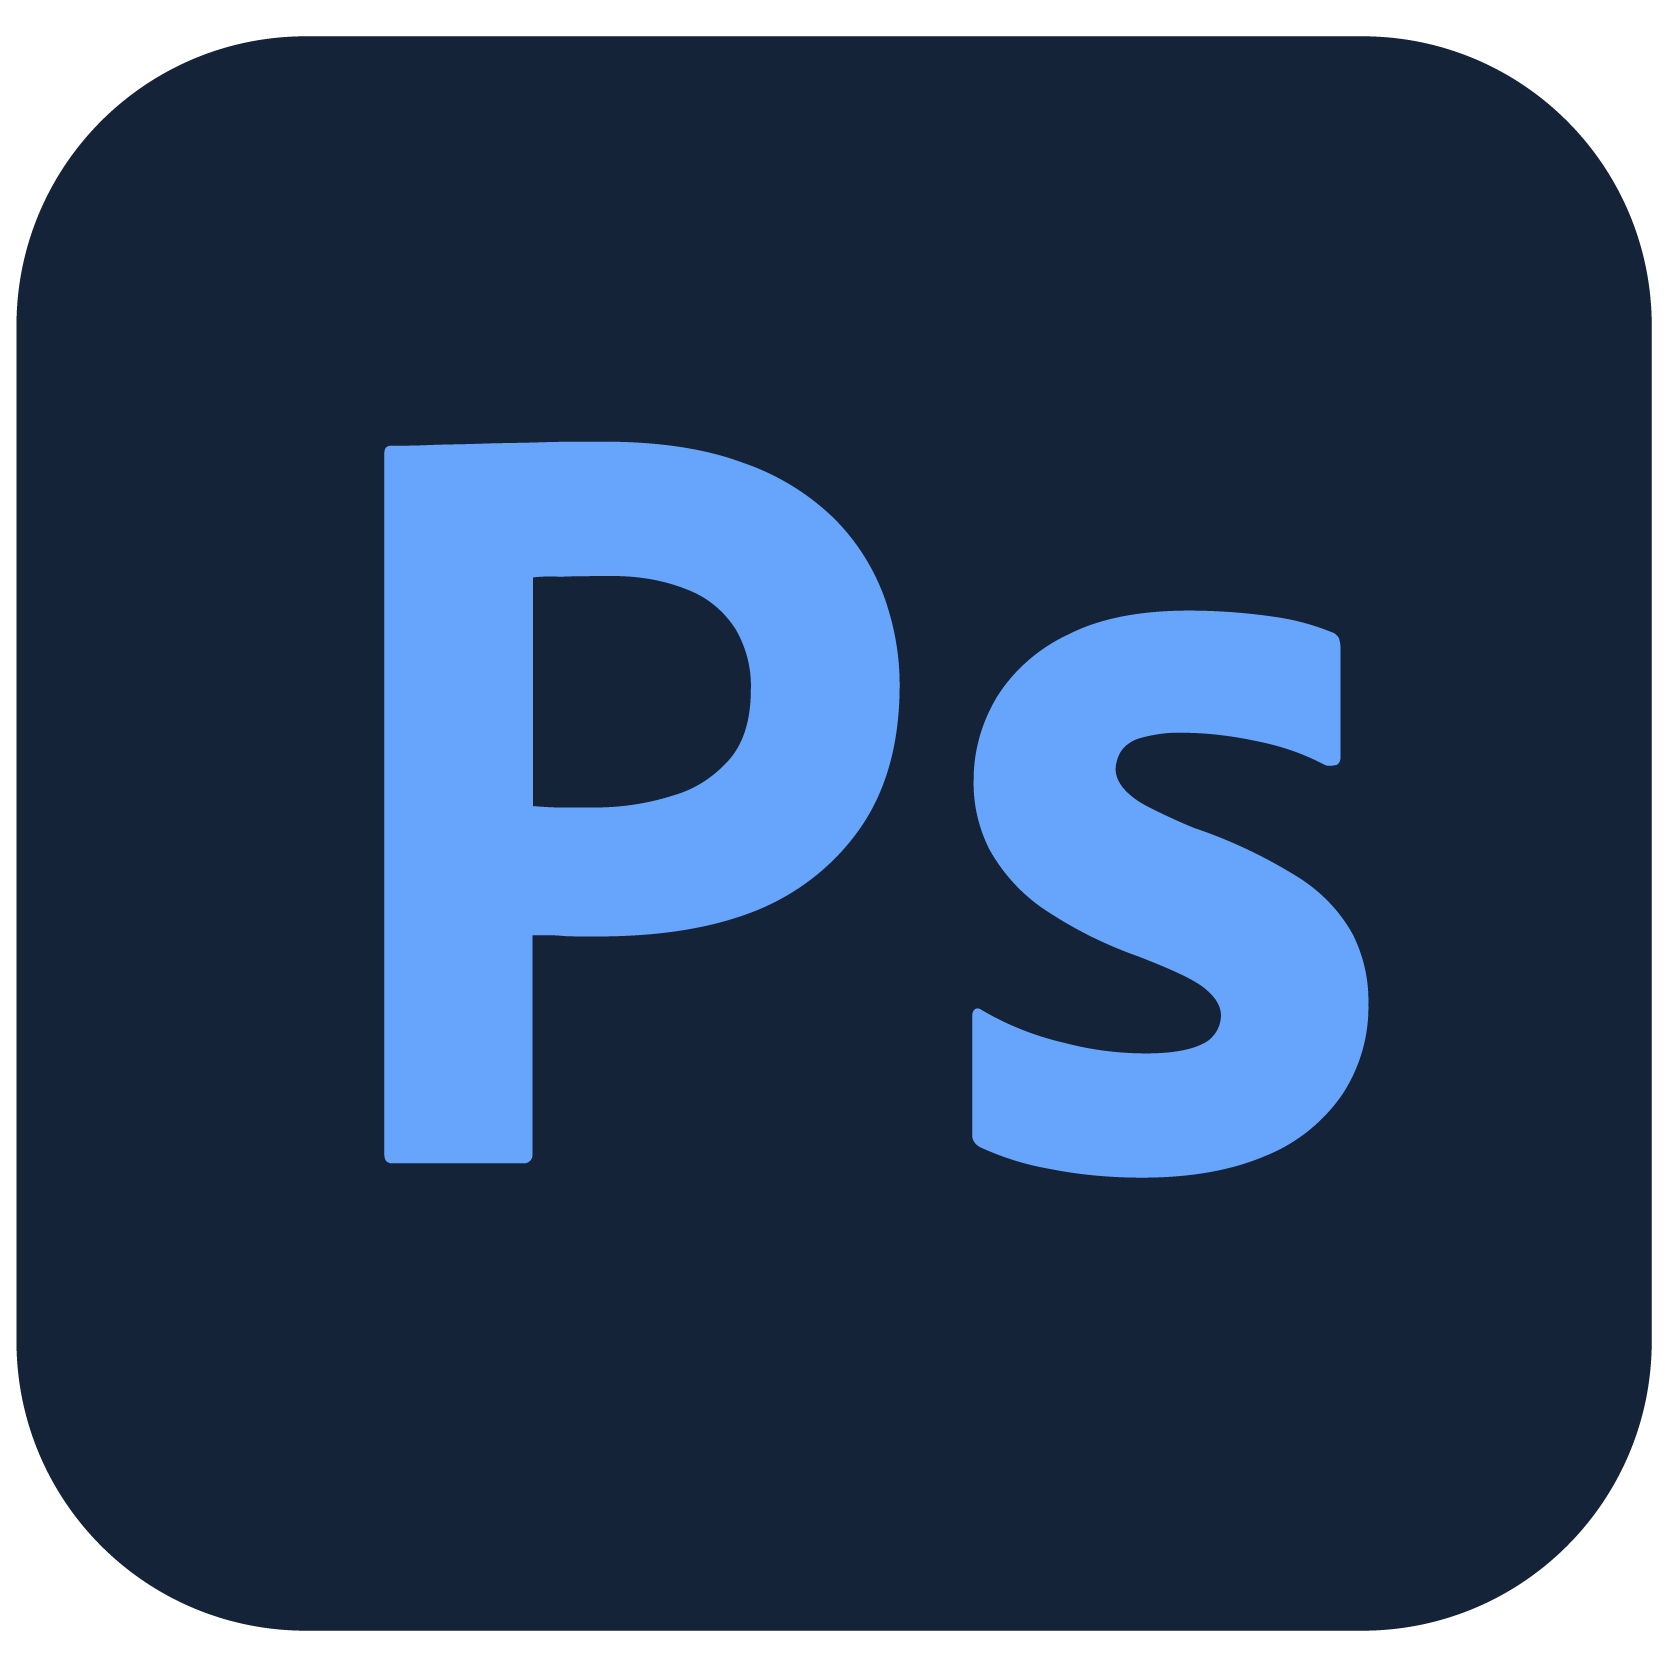 Photoshop graphic design